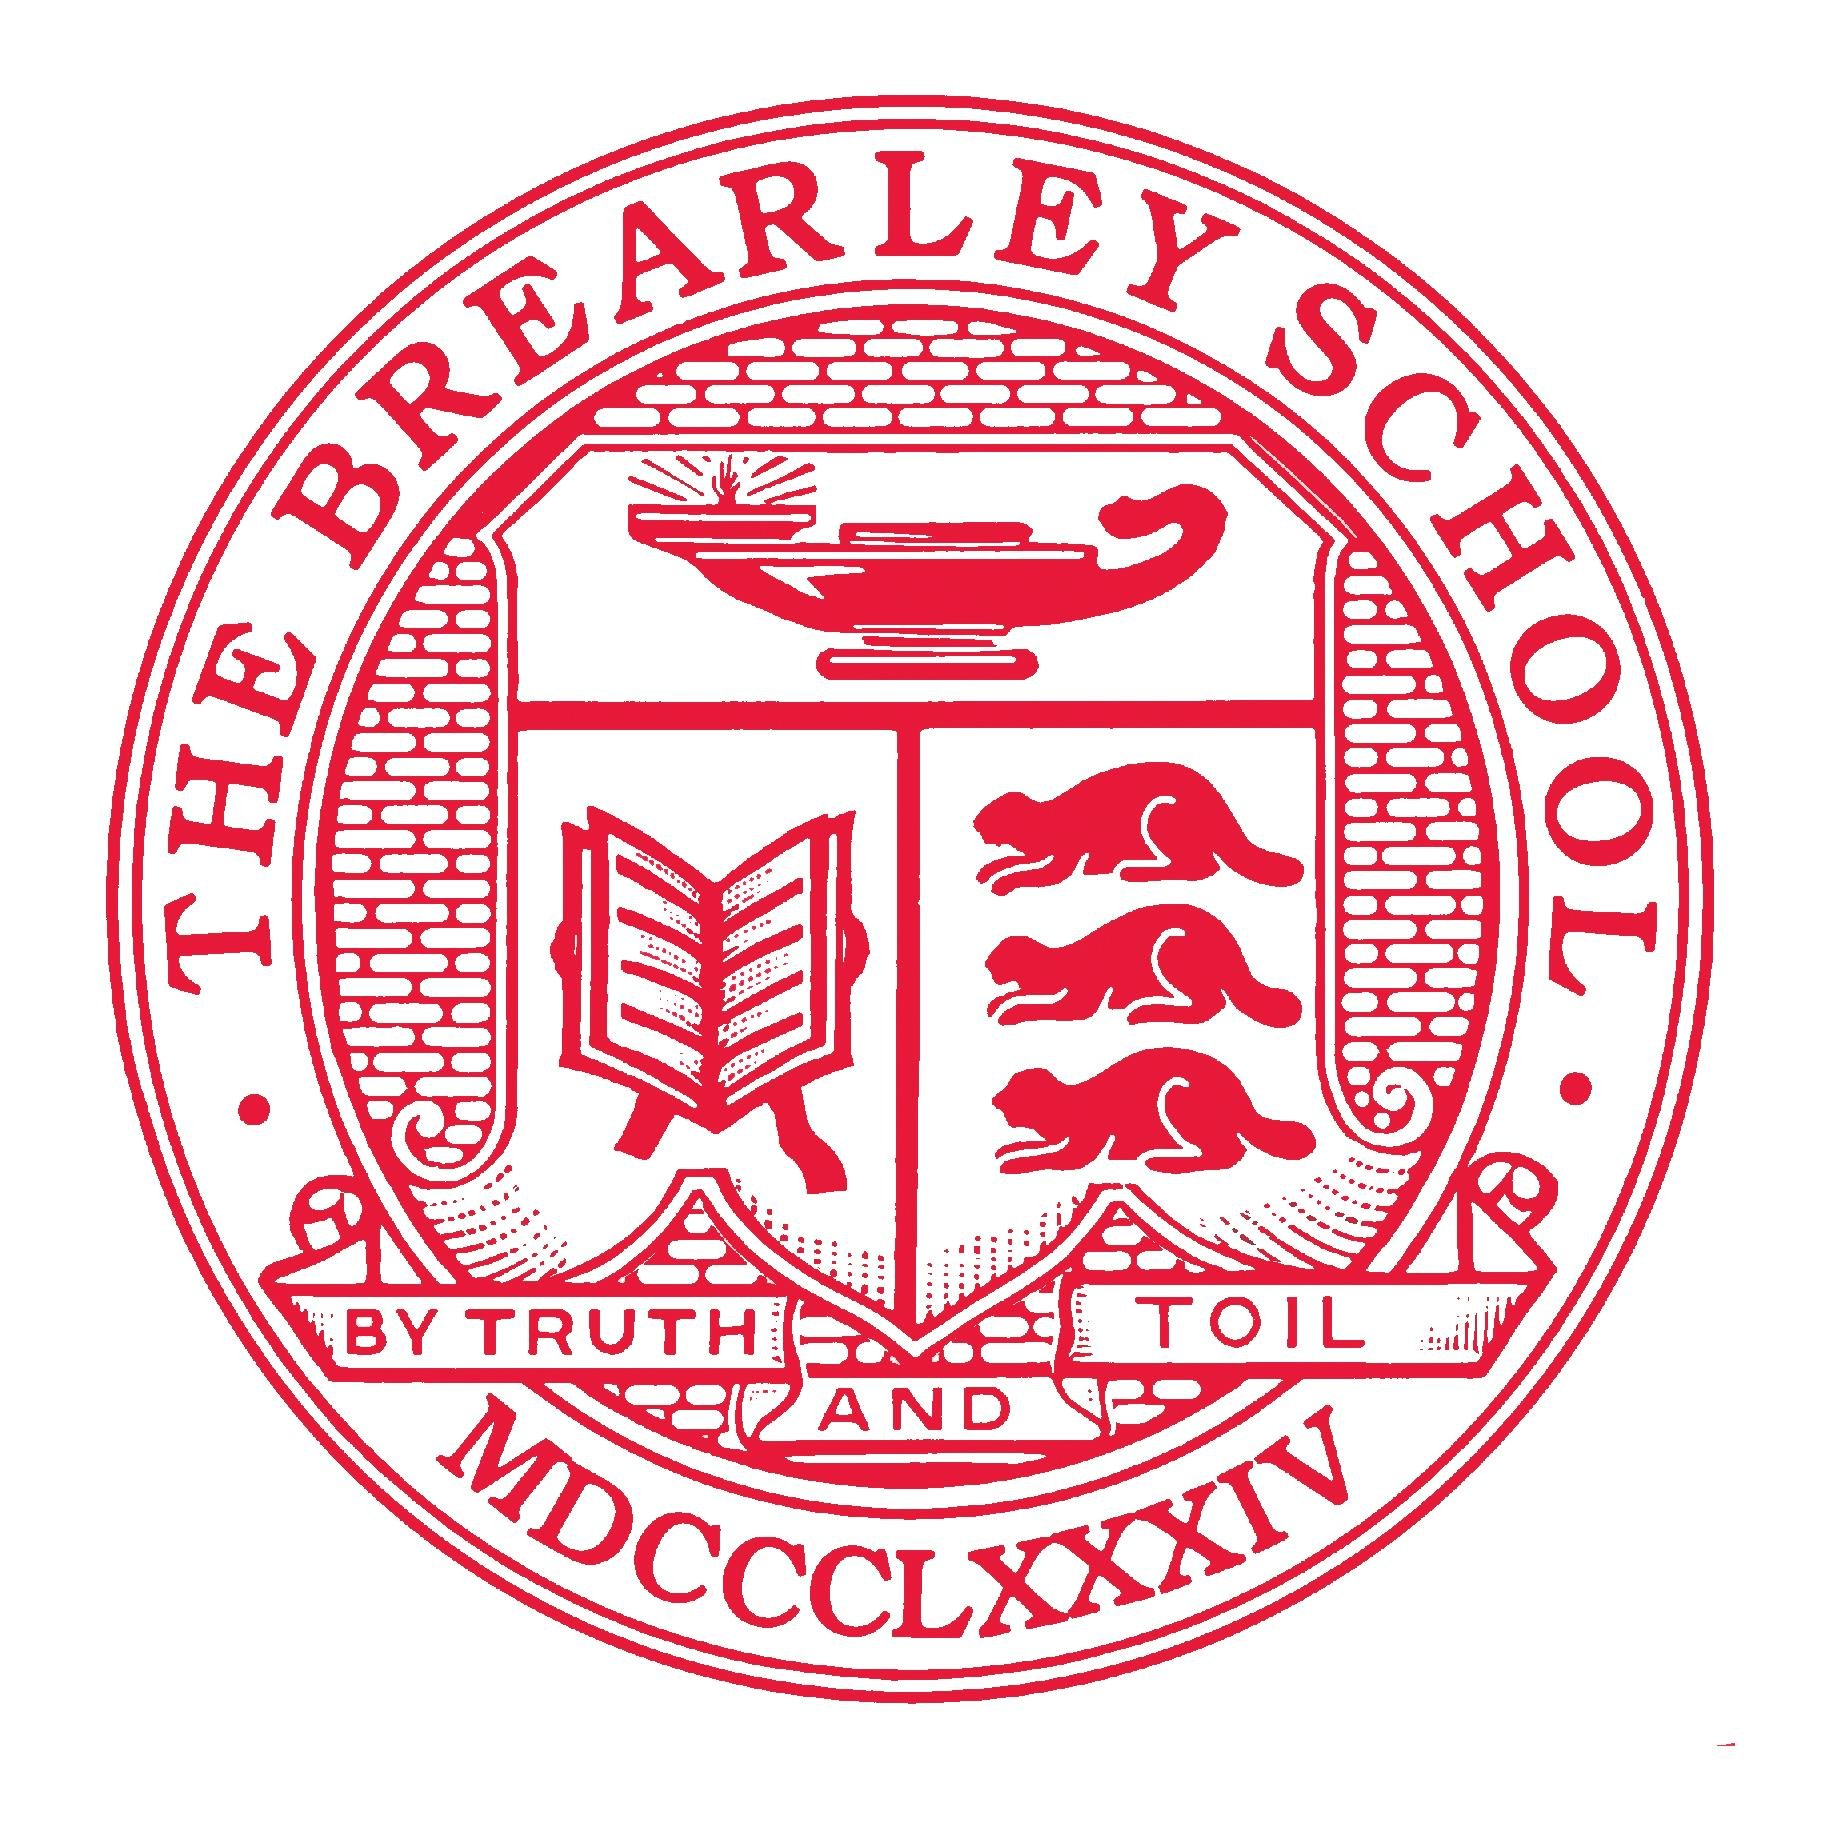 Brearley School